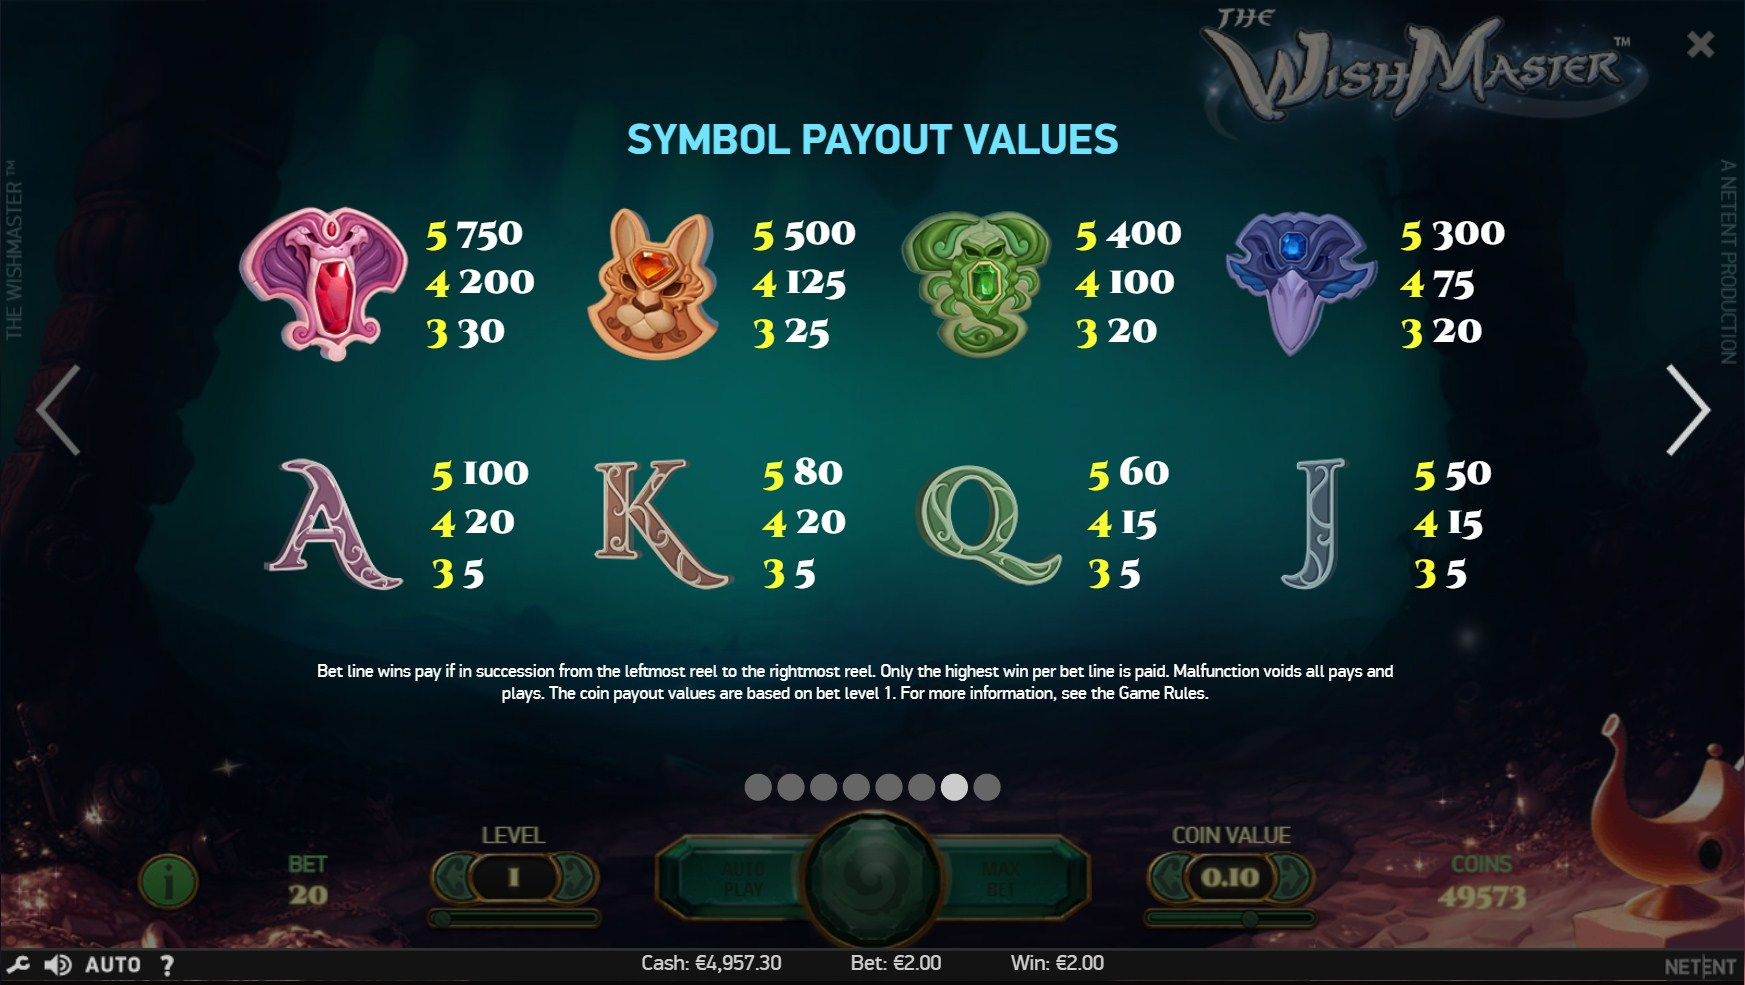 The Wish Master Slot Paytable